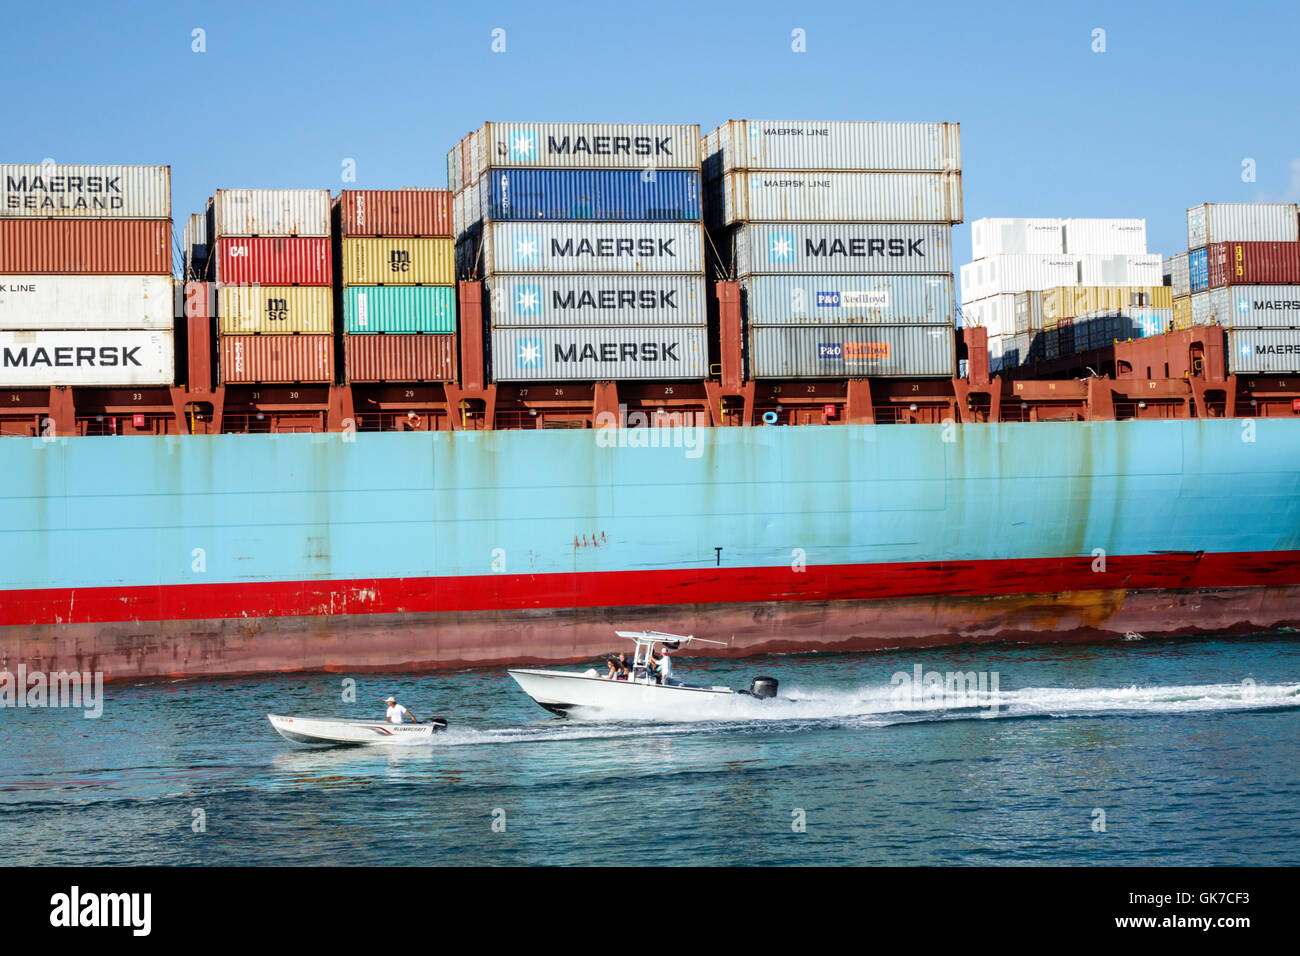 Miami Florida Beach South Beach Government Cut shipping channel water container ship cargo Maersk Line transportation Stock Photo